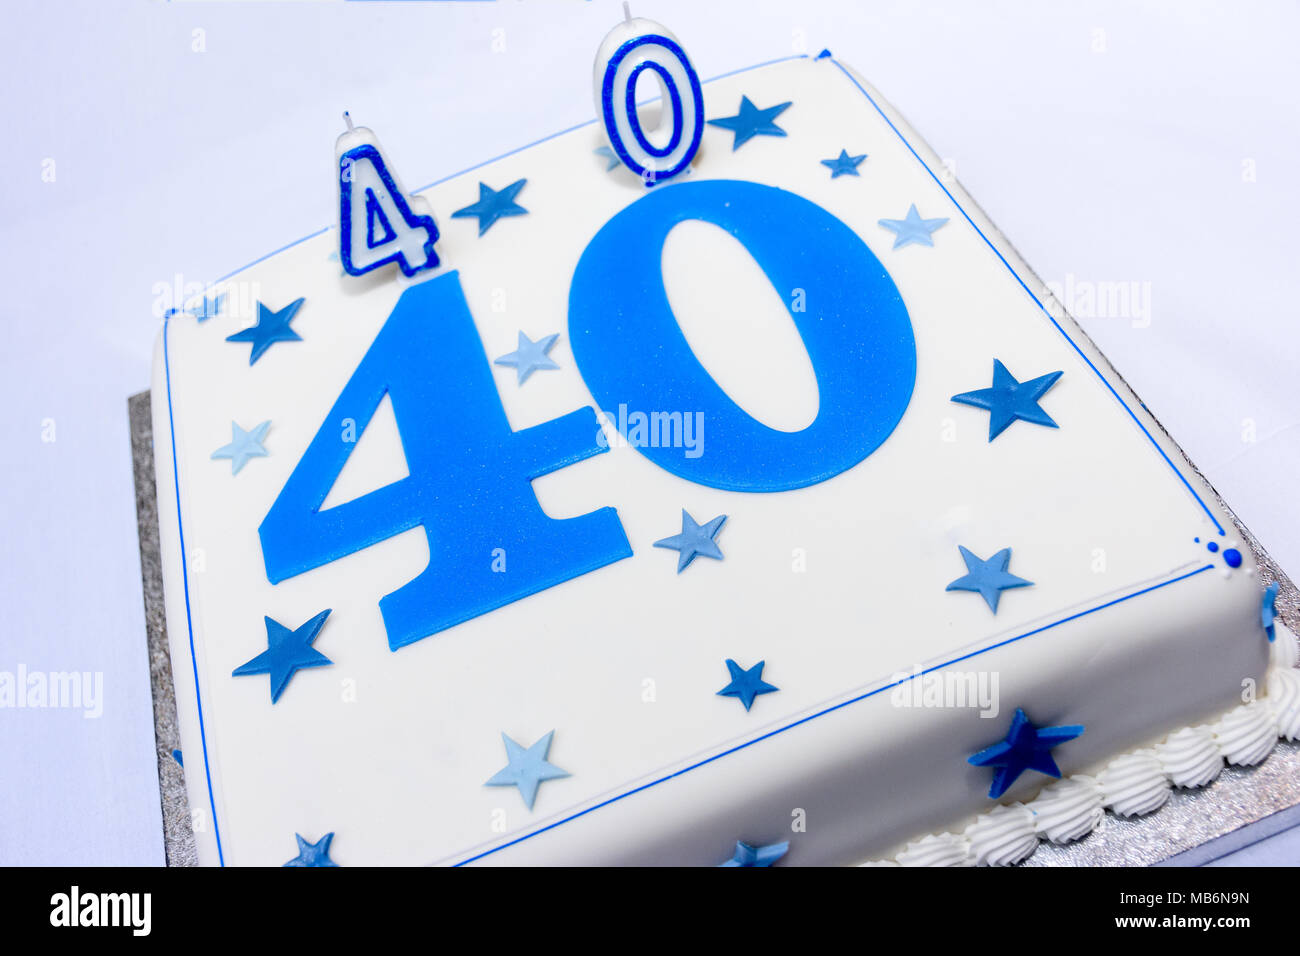 40th White Birthday Cake With Blue Decorations